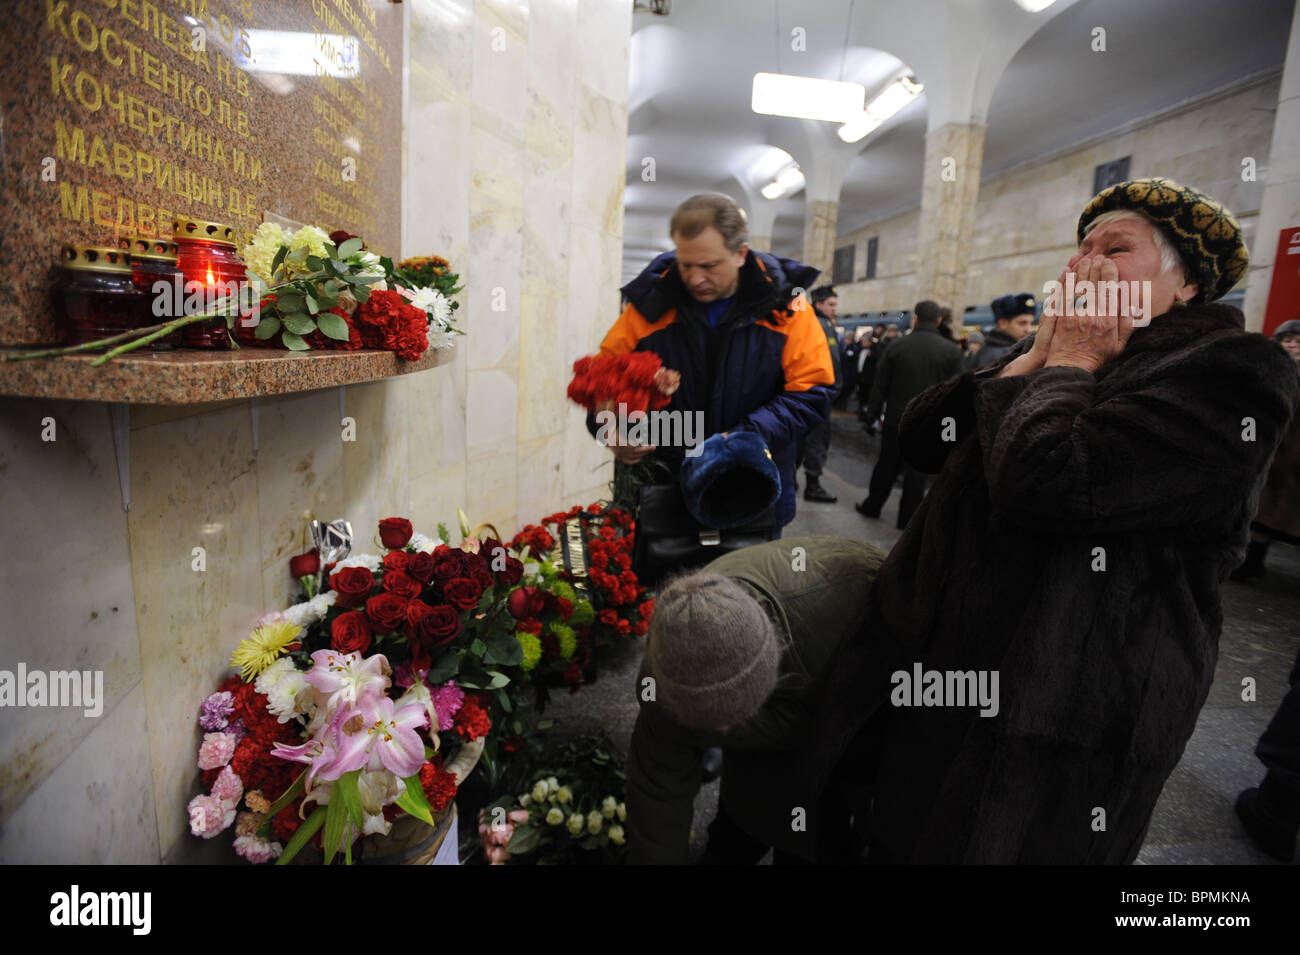 Victims of terrorist attack commemorated in Moscow - Stock Image